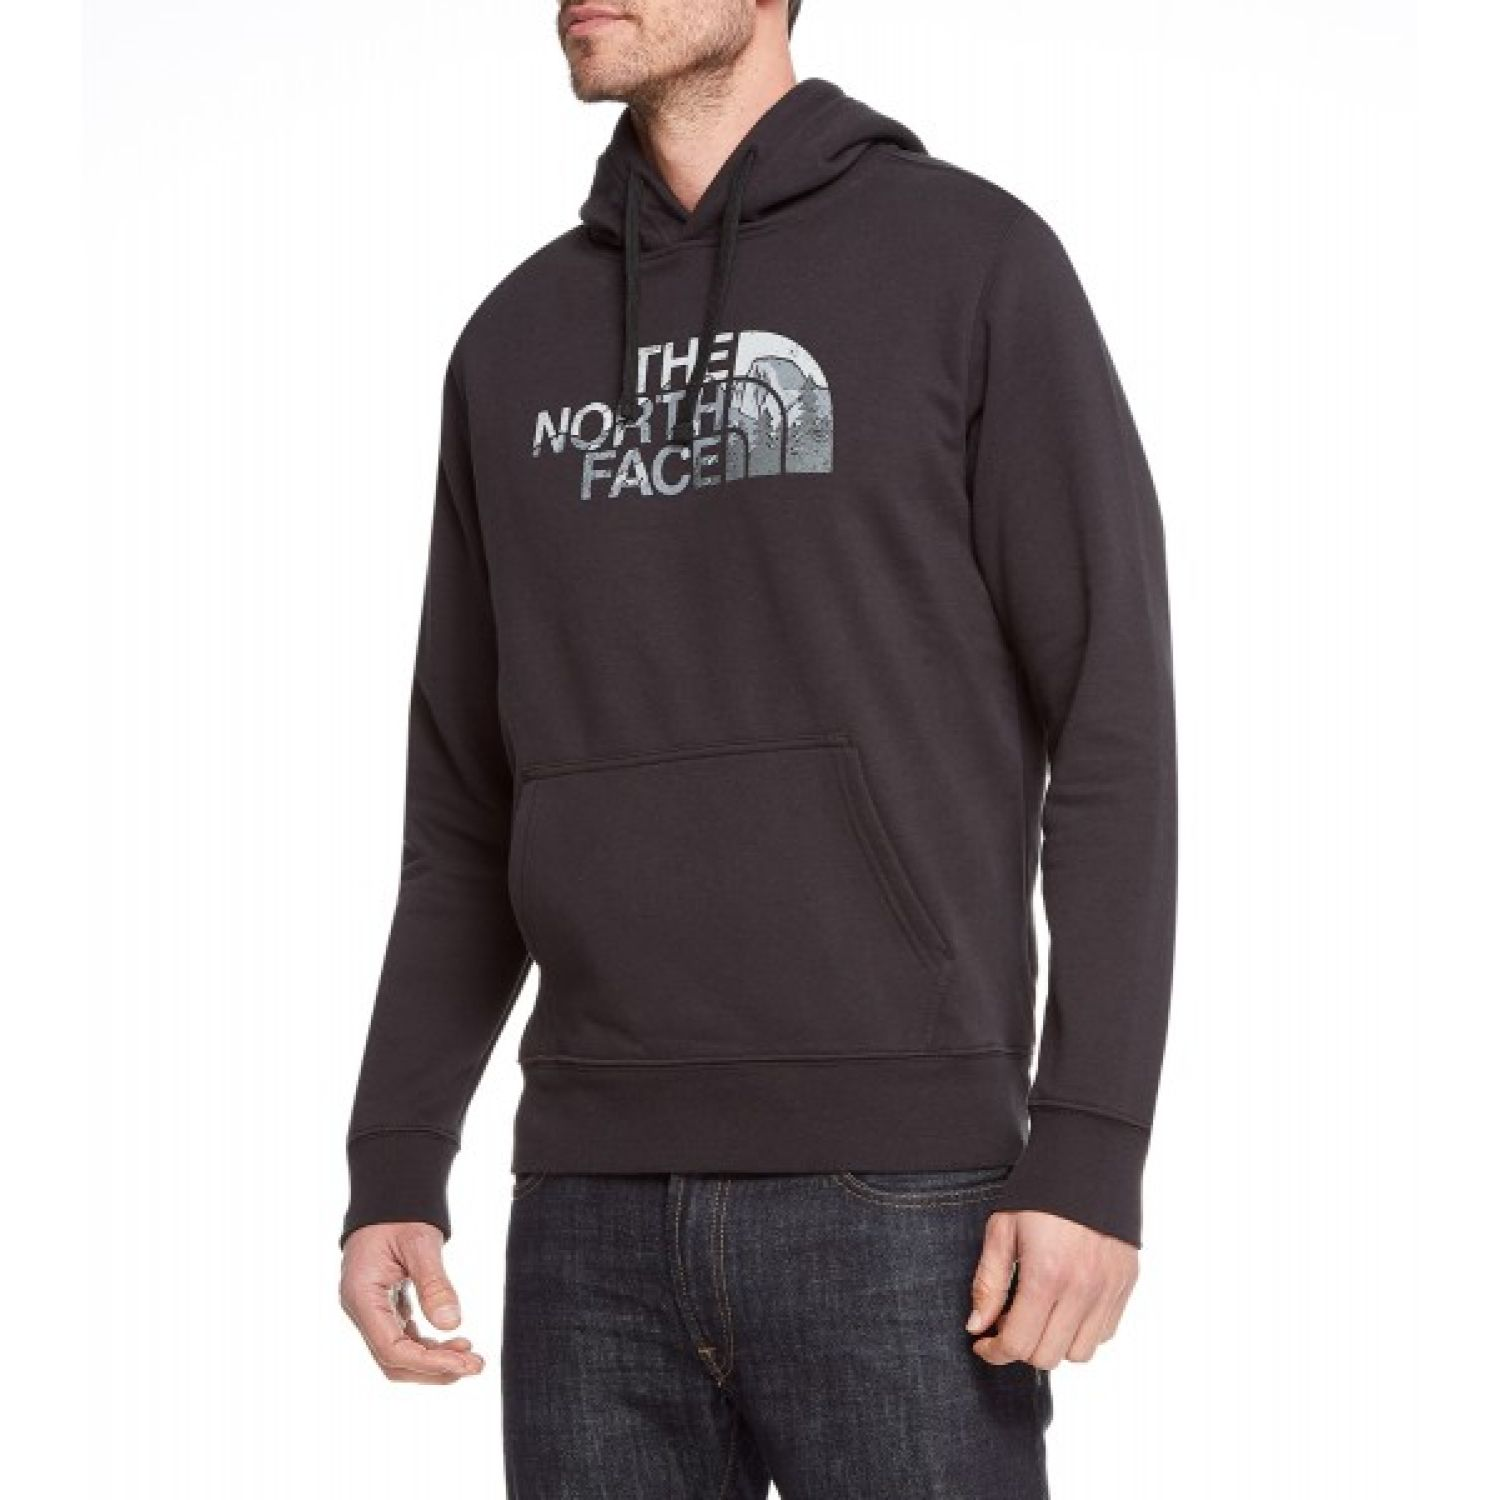 The North Face m half dome pullover hoodie Negro Hoodies Deportivos